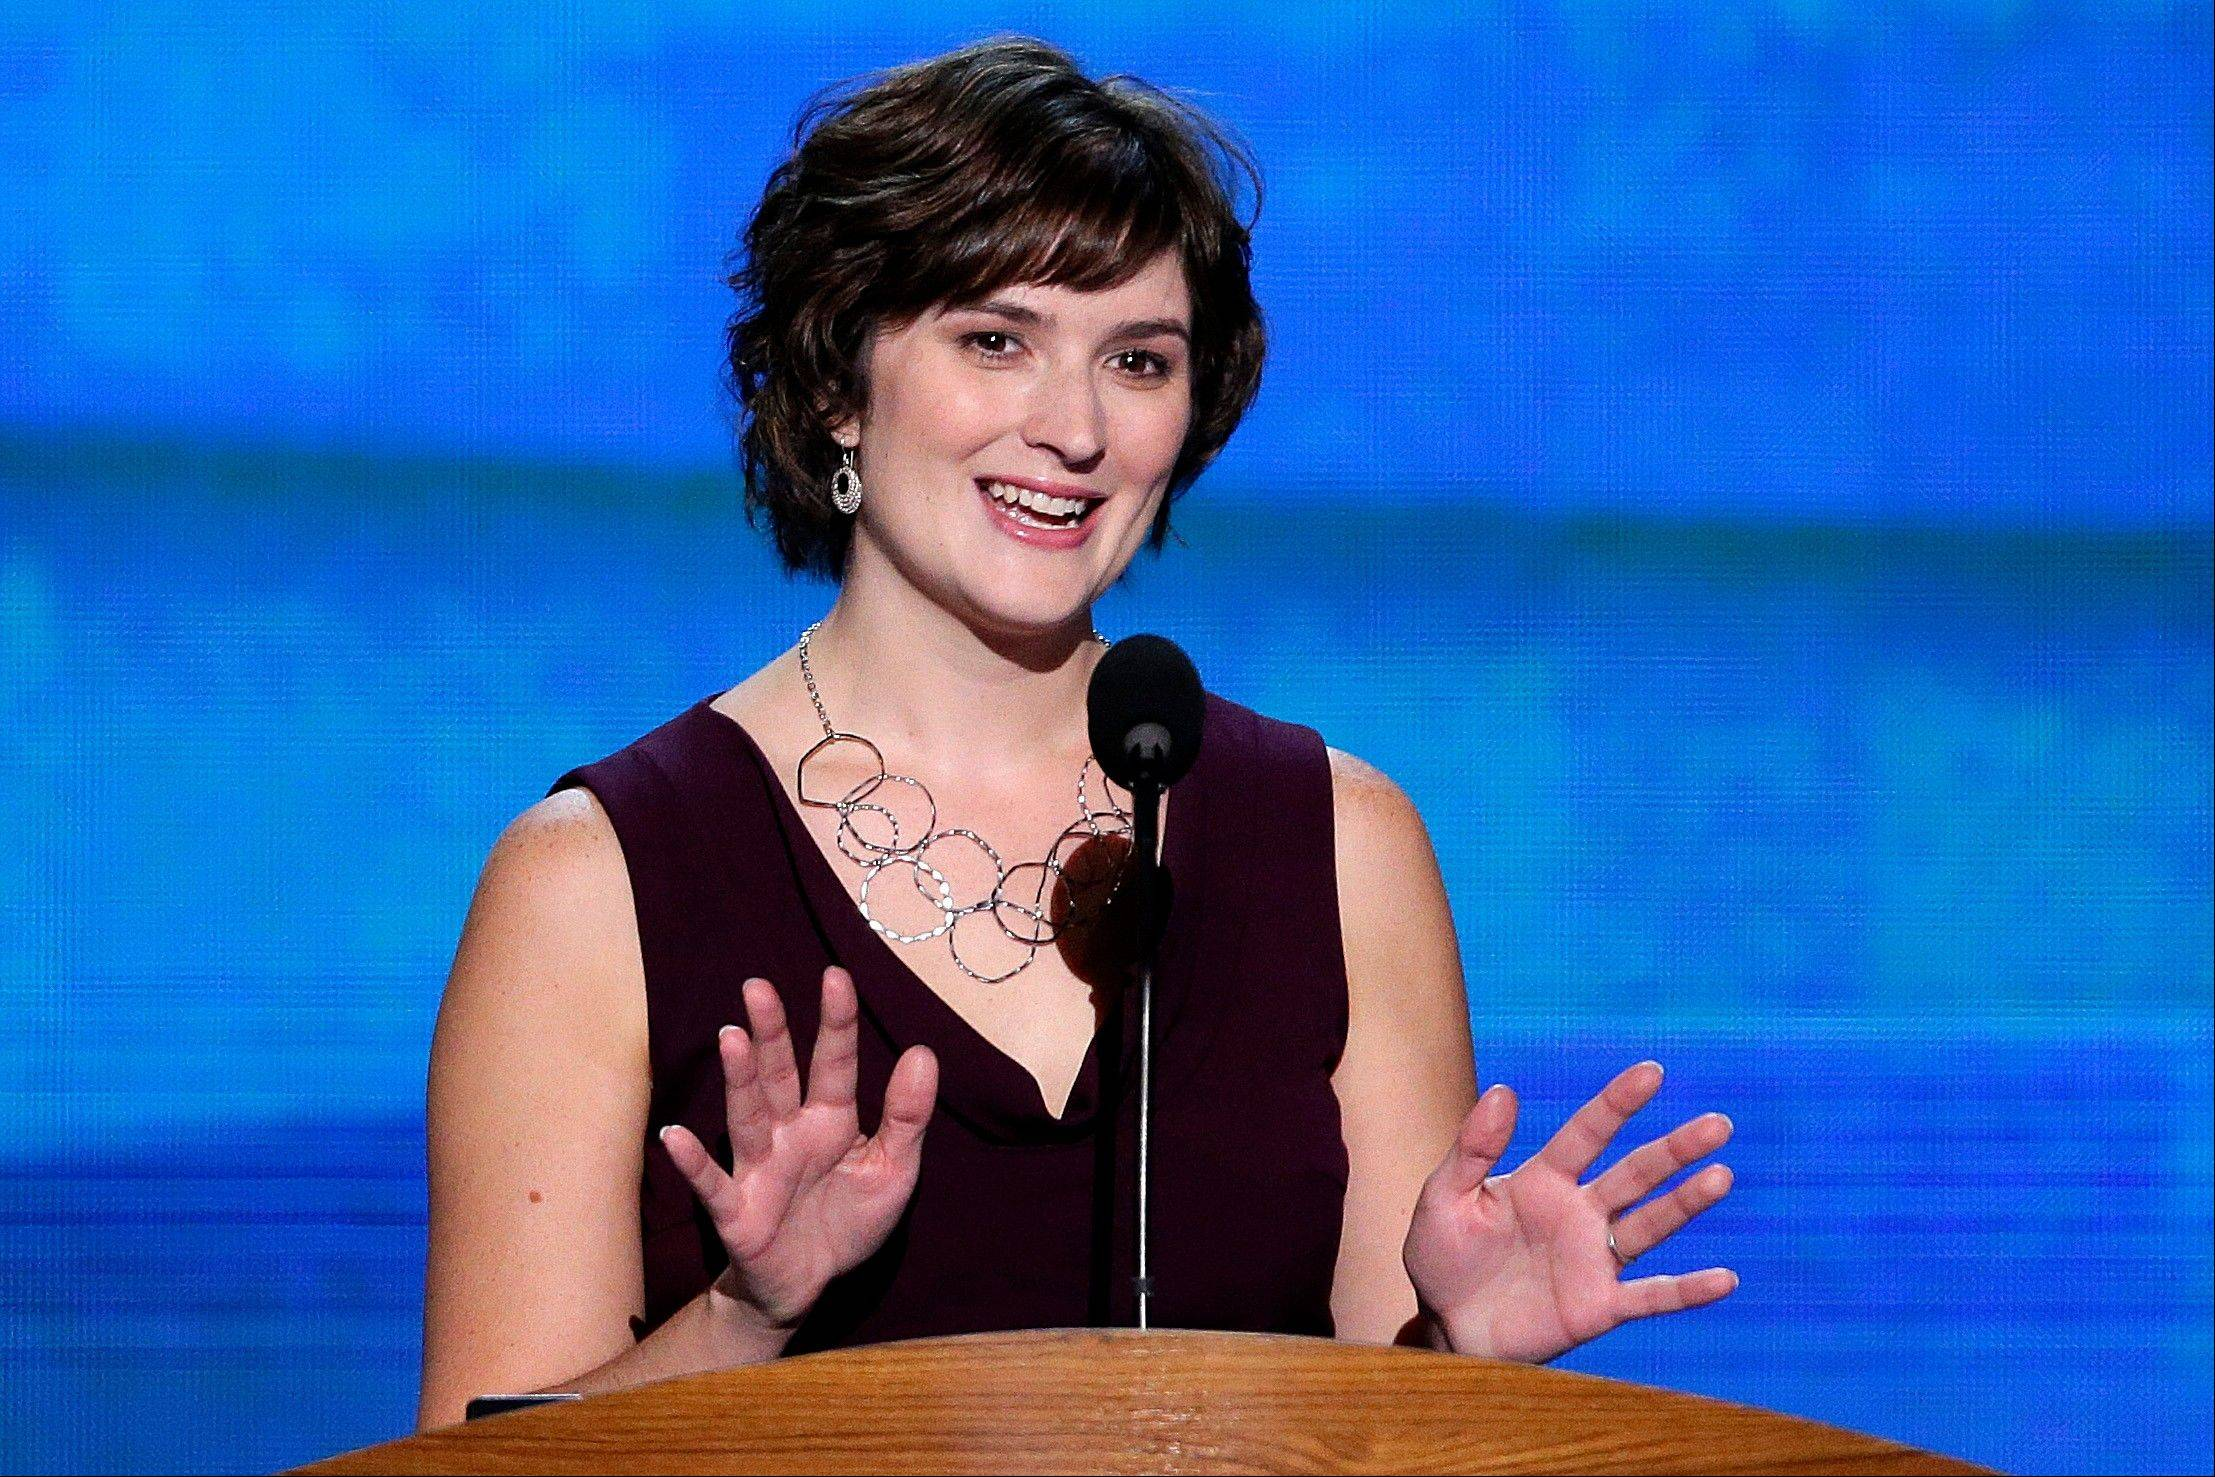 Sandra Fluke, attorney and women's rights activist addresses the Democratic National Convention in Charlotte, N.C., on Wednesday, Sept. 5, 2012.